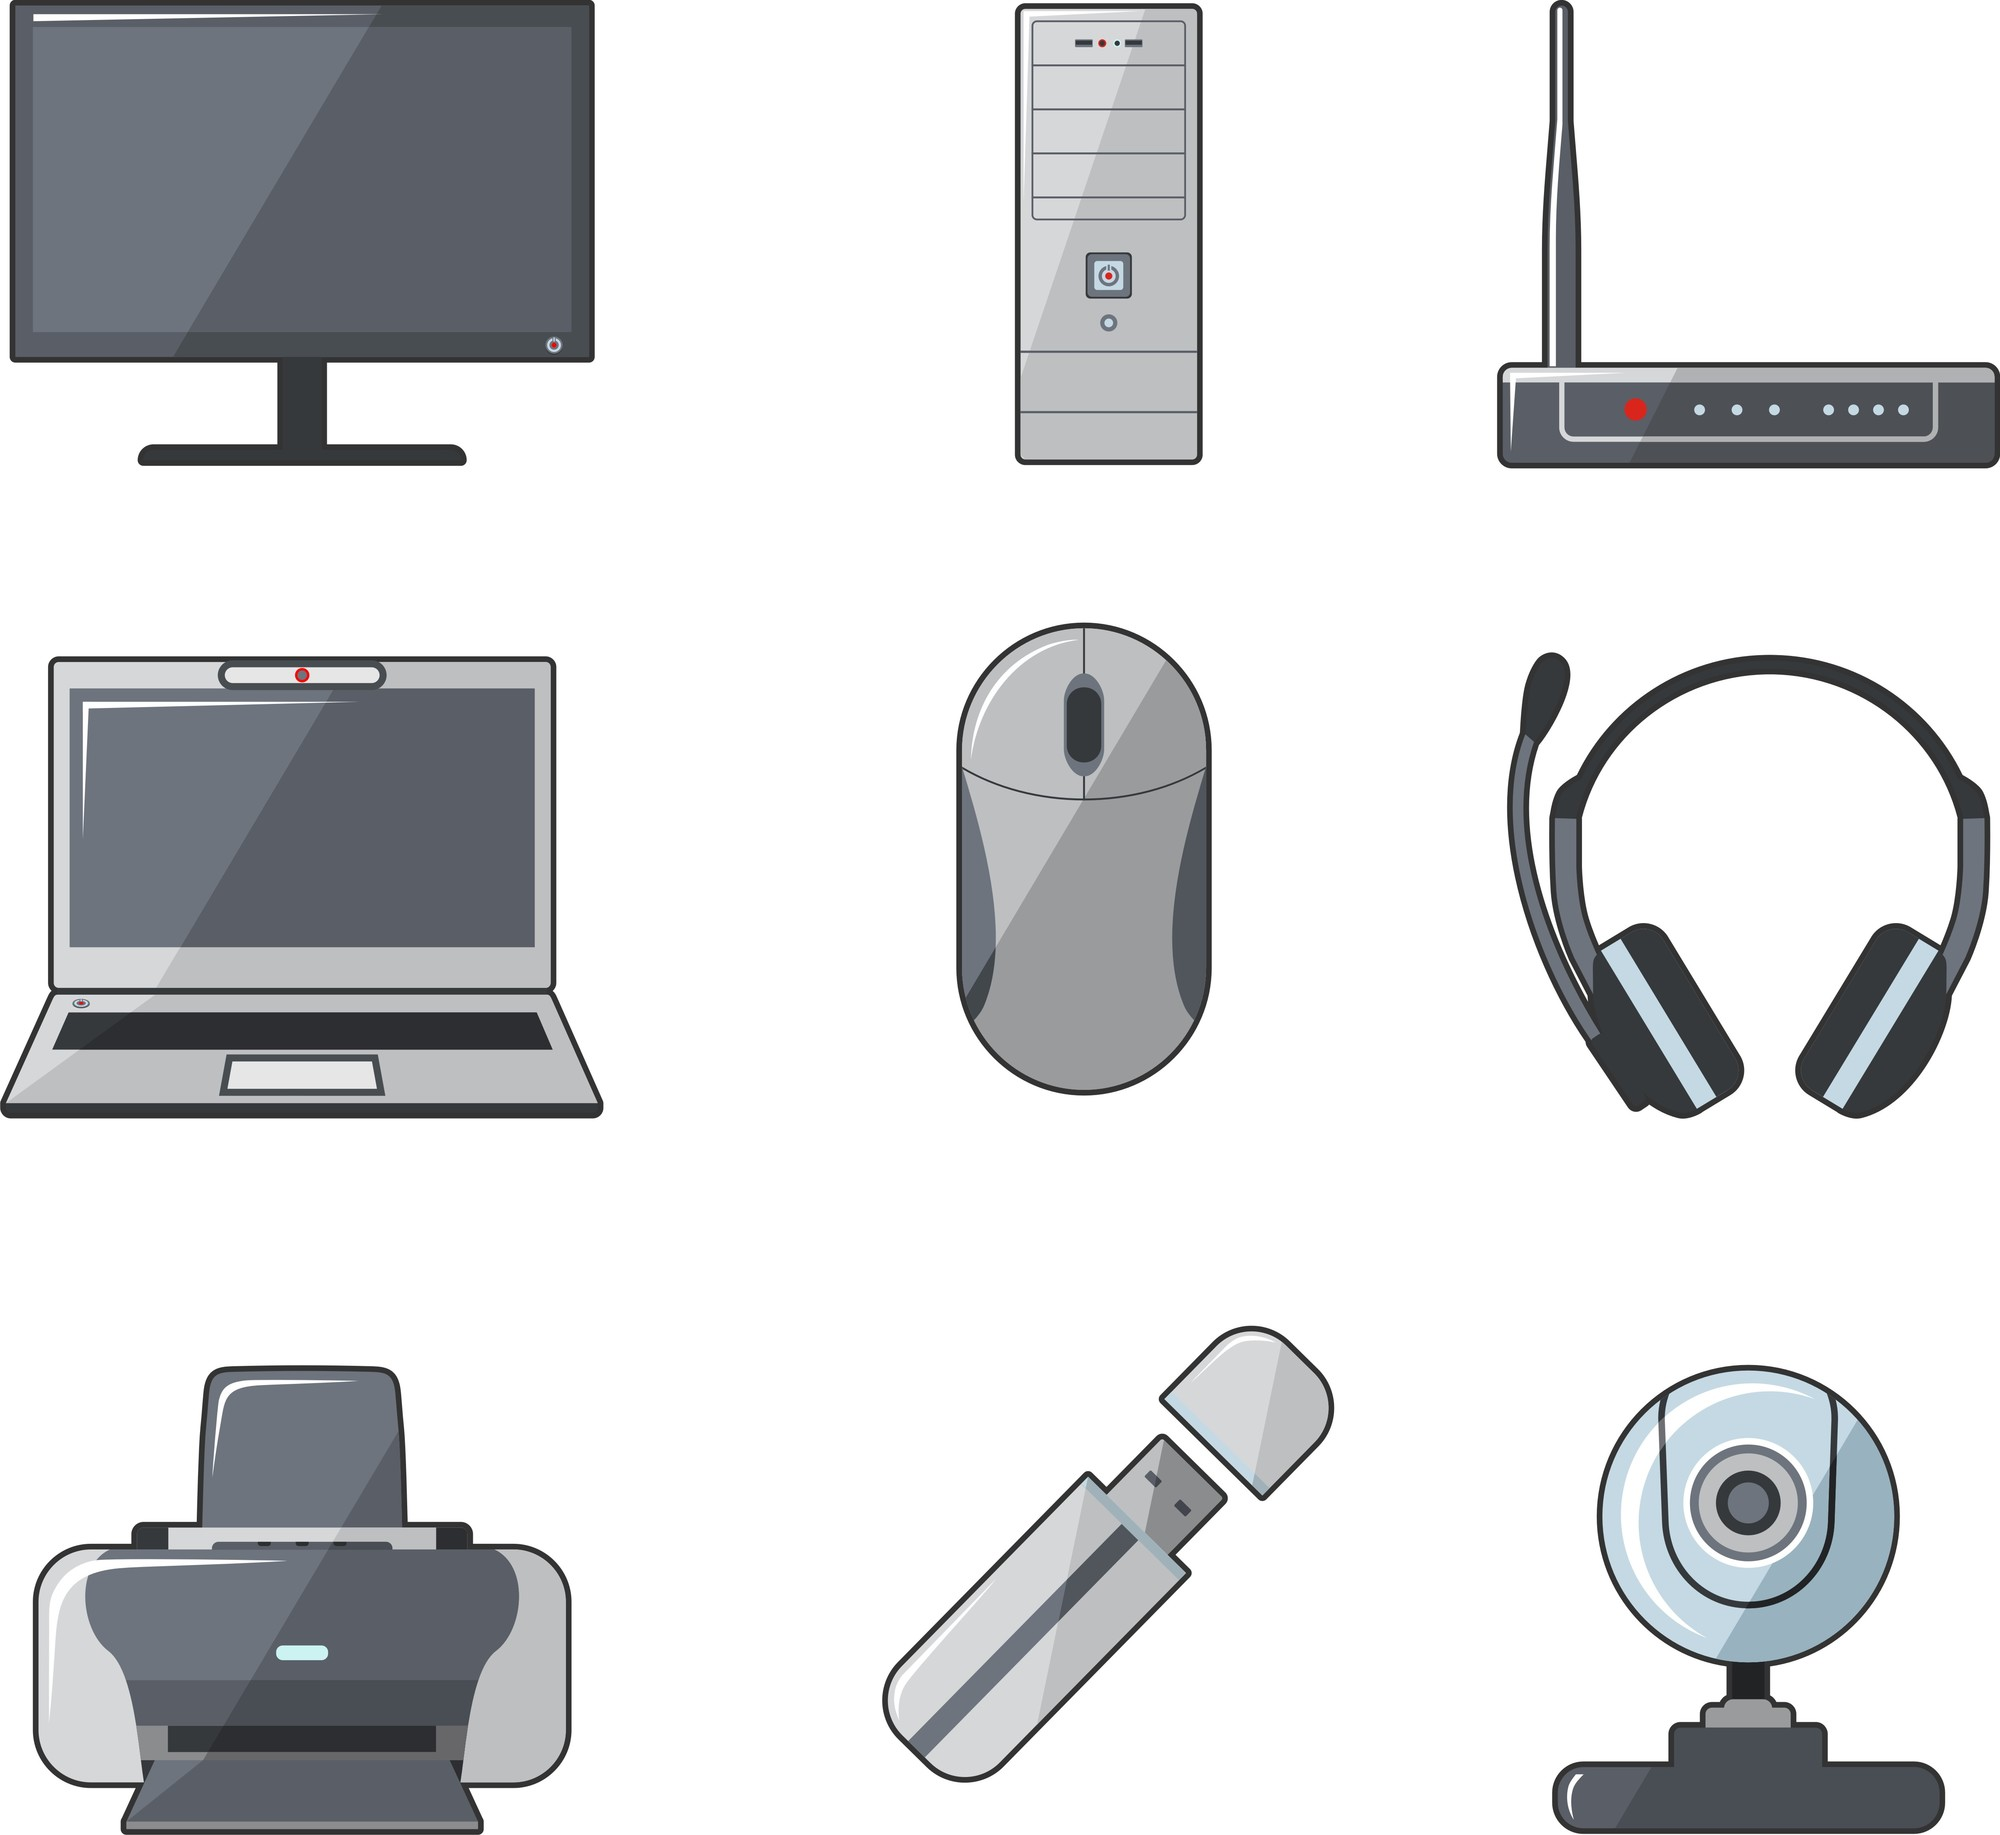 Set of digital devices and tools in flat style